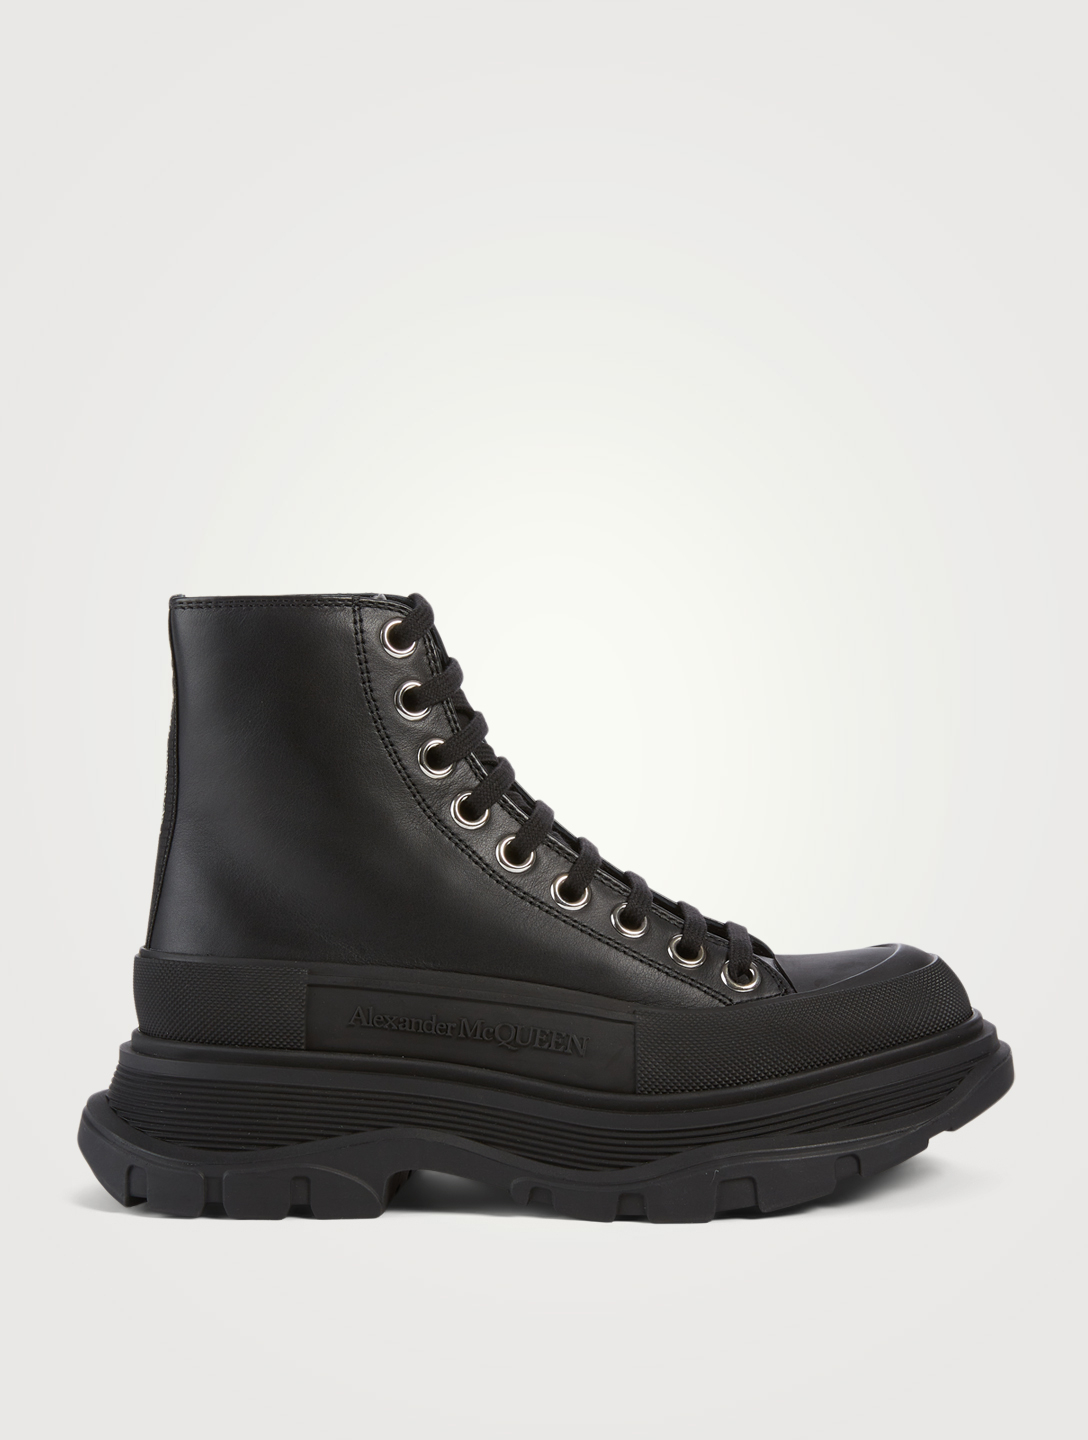 ALEXANDER MCQUEEN Tread Slick Leather Platform High-Top Sneakers Women's Black